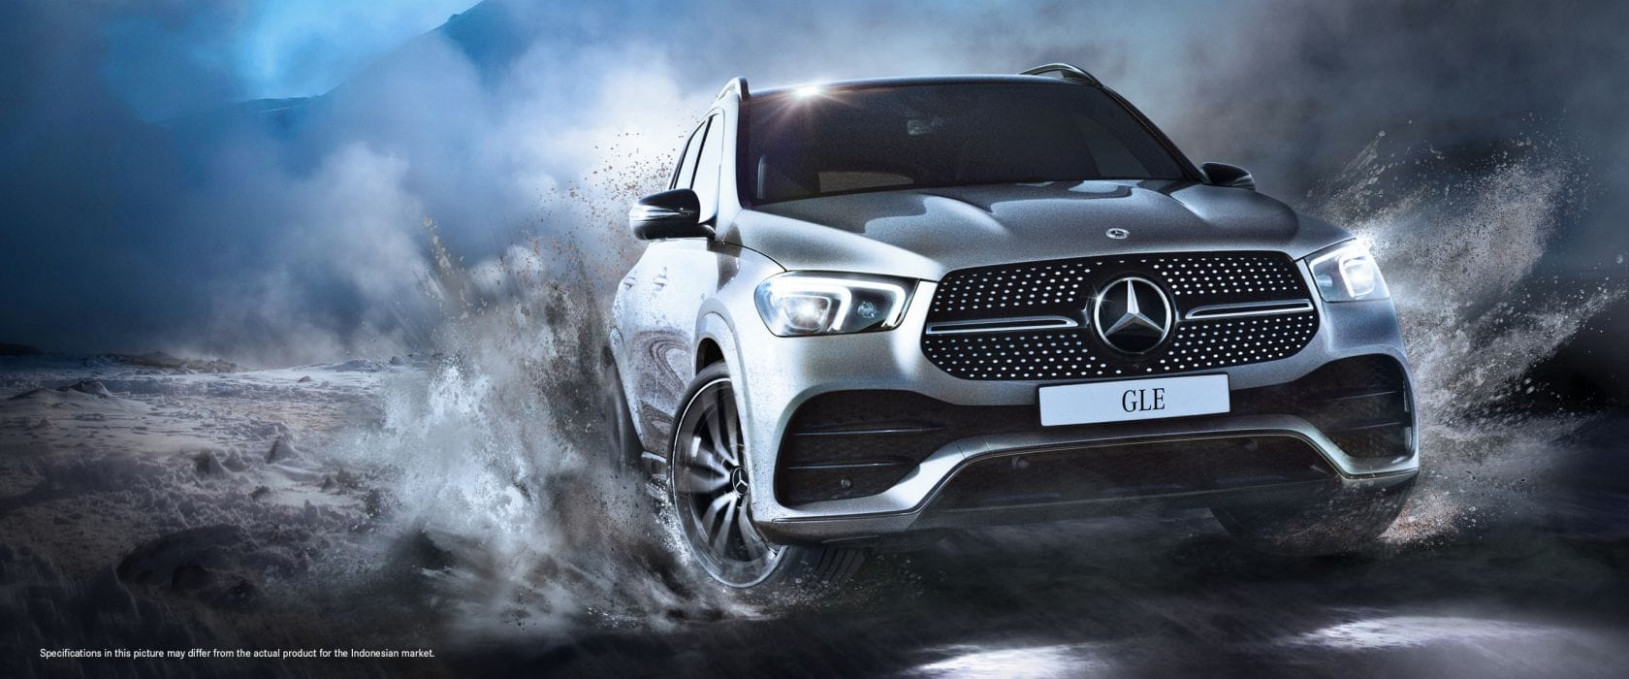 Mercedes-Benz Indonesia Official Website: Luxury, sporty and ..